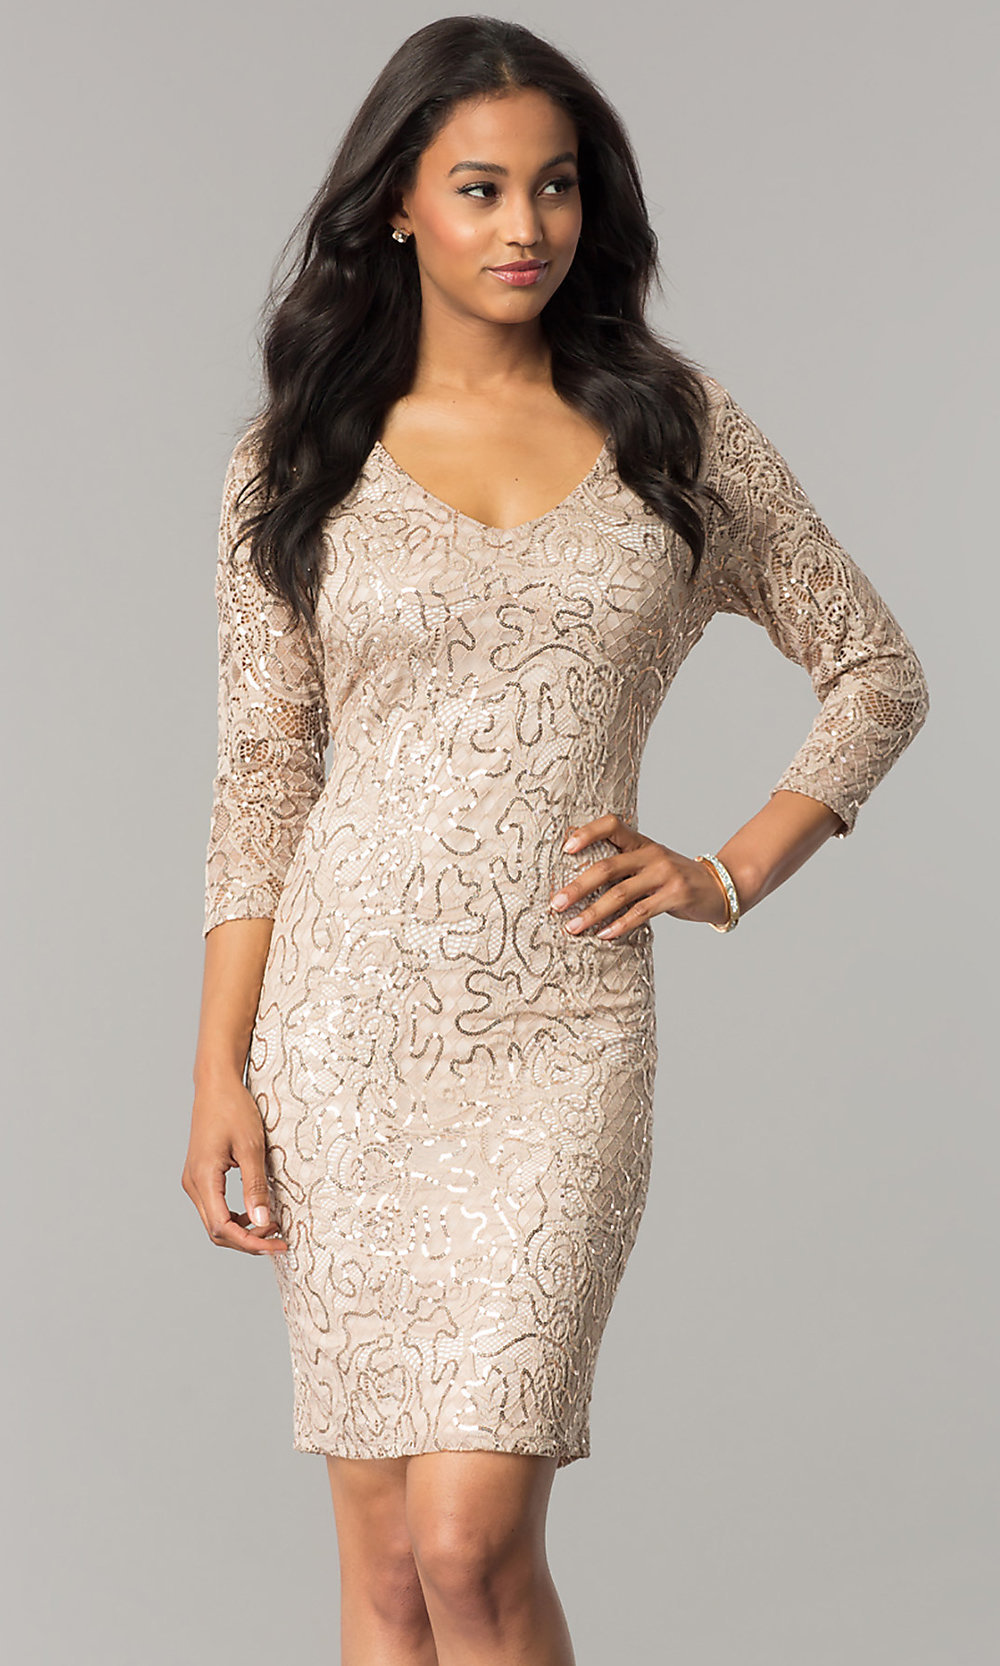 Taupe Nude Sleeved Short Sequin-Lace Party Dress